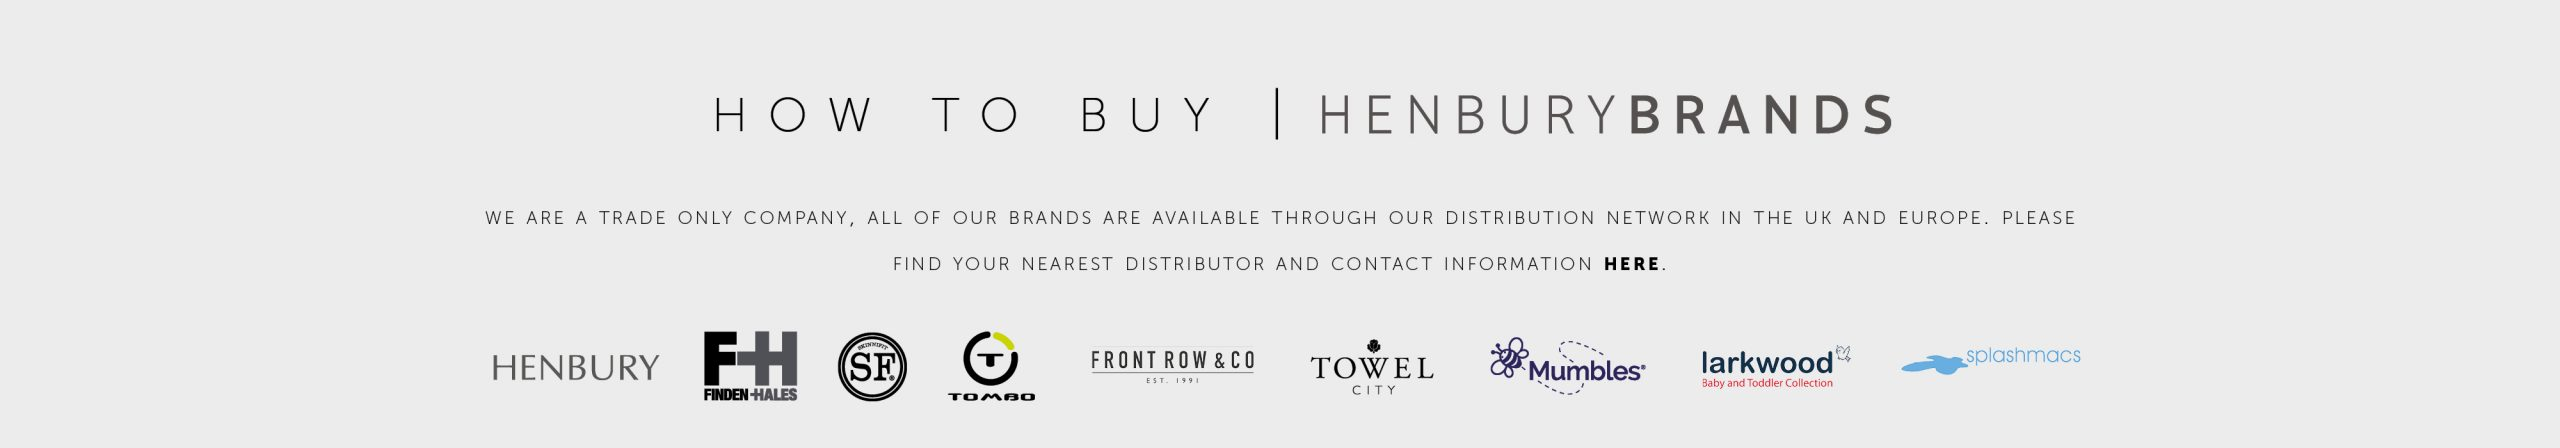 henbury brands how to buy- grey